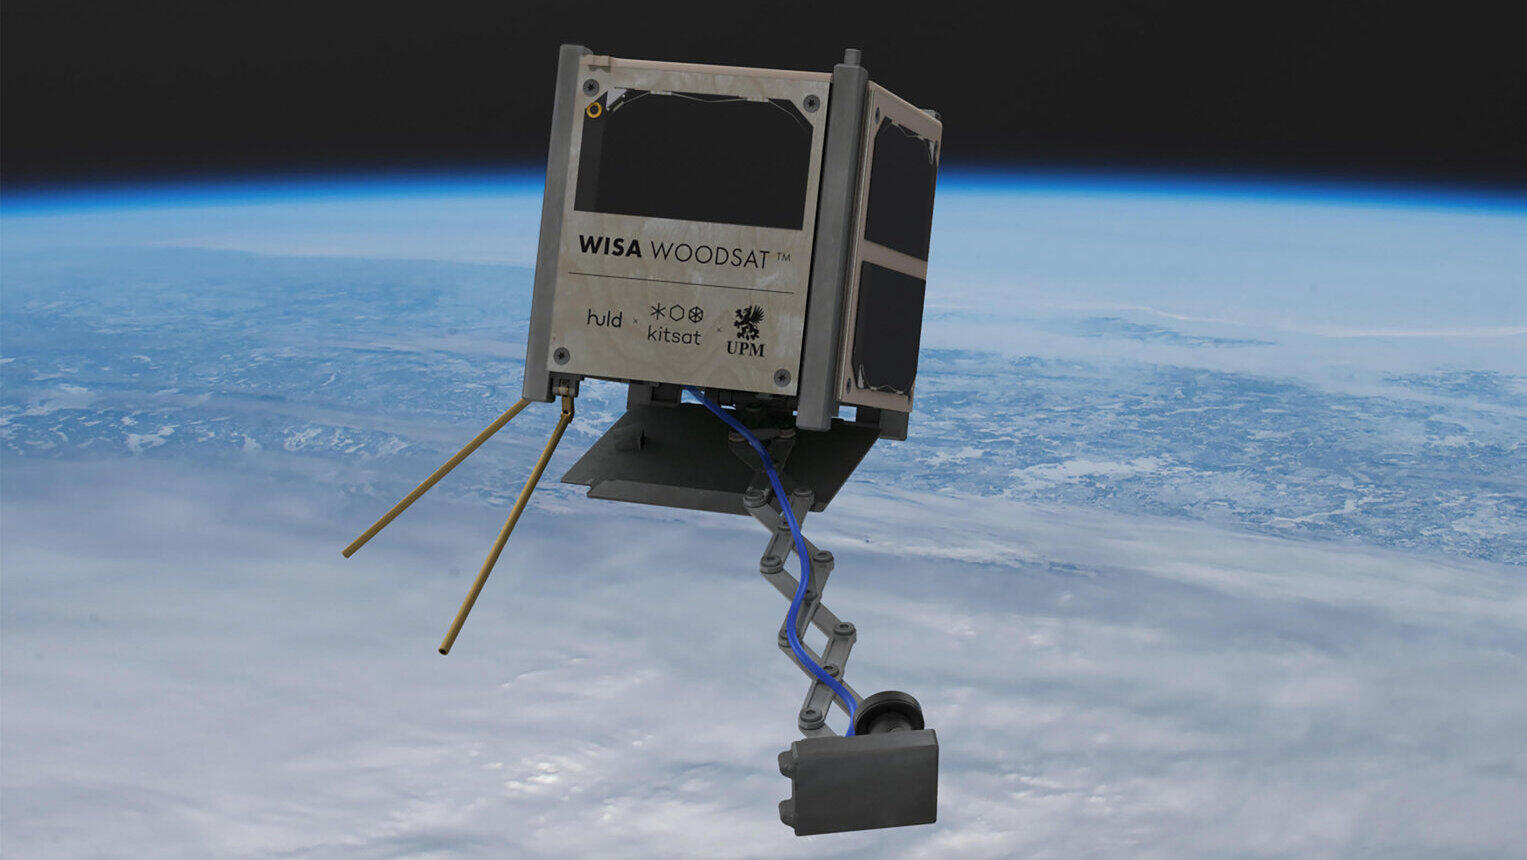 The world's first wooden satellite aims to show that plywood can survive in space